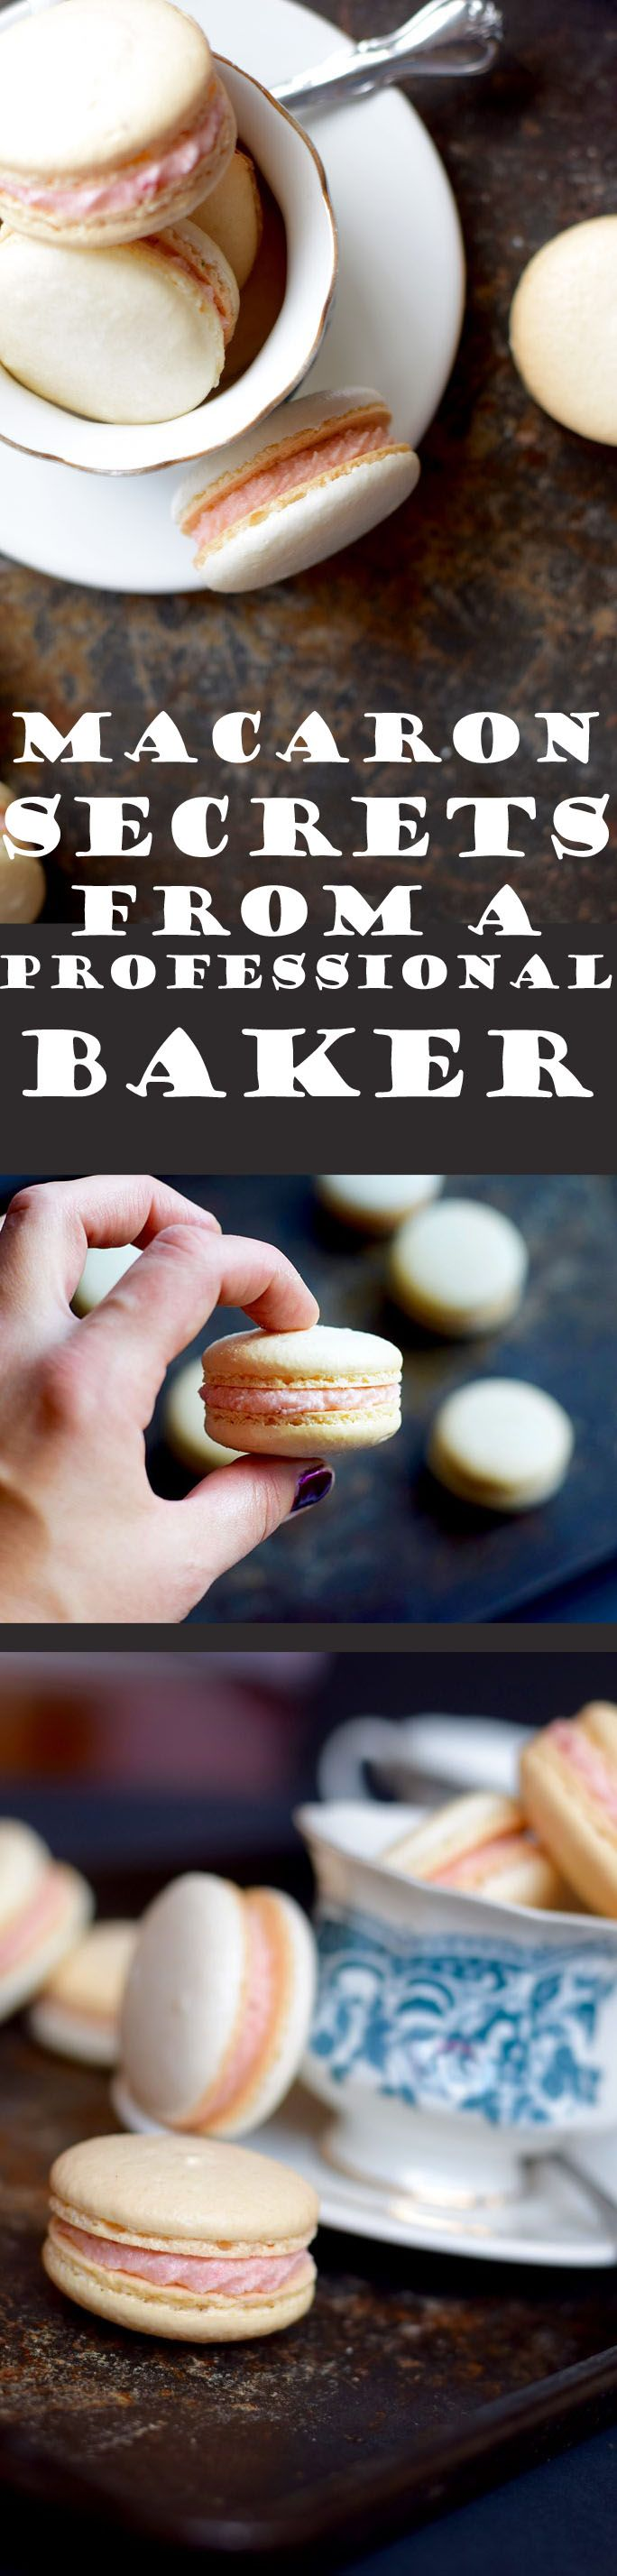 Learn all the macaron secrets that you'll need to make successful macarons from your first batch (from someone who makes 600 macarons a week).